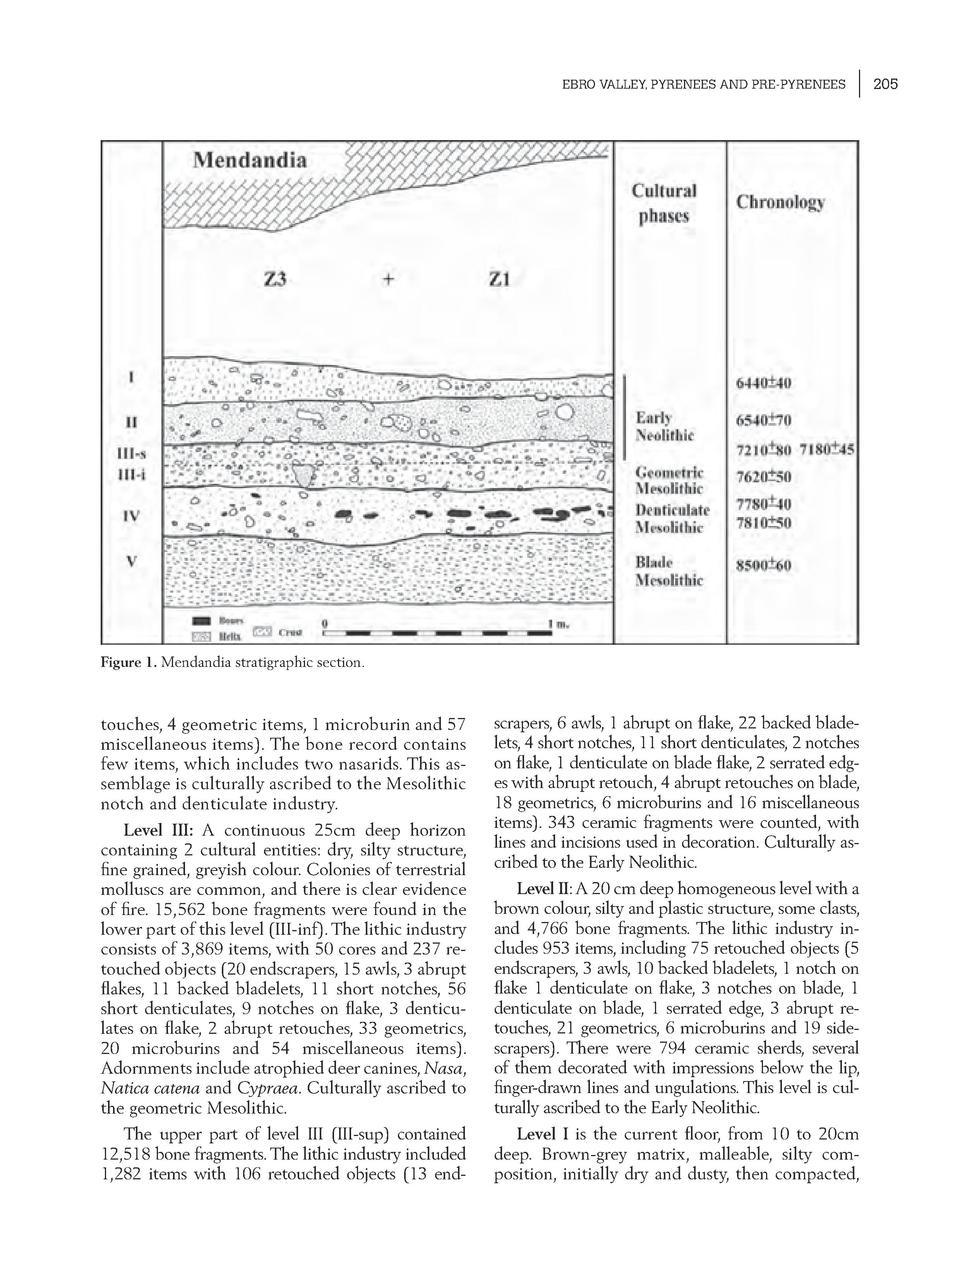 EBRO VALLEY, PYRENEES AND PRE-PYRENEES  Figure 1. Mendandia stratigraphic section.  touches, 4 geometric items, 1 microbur...